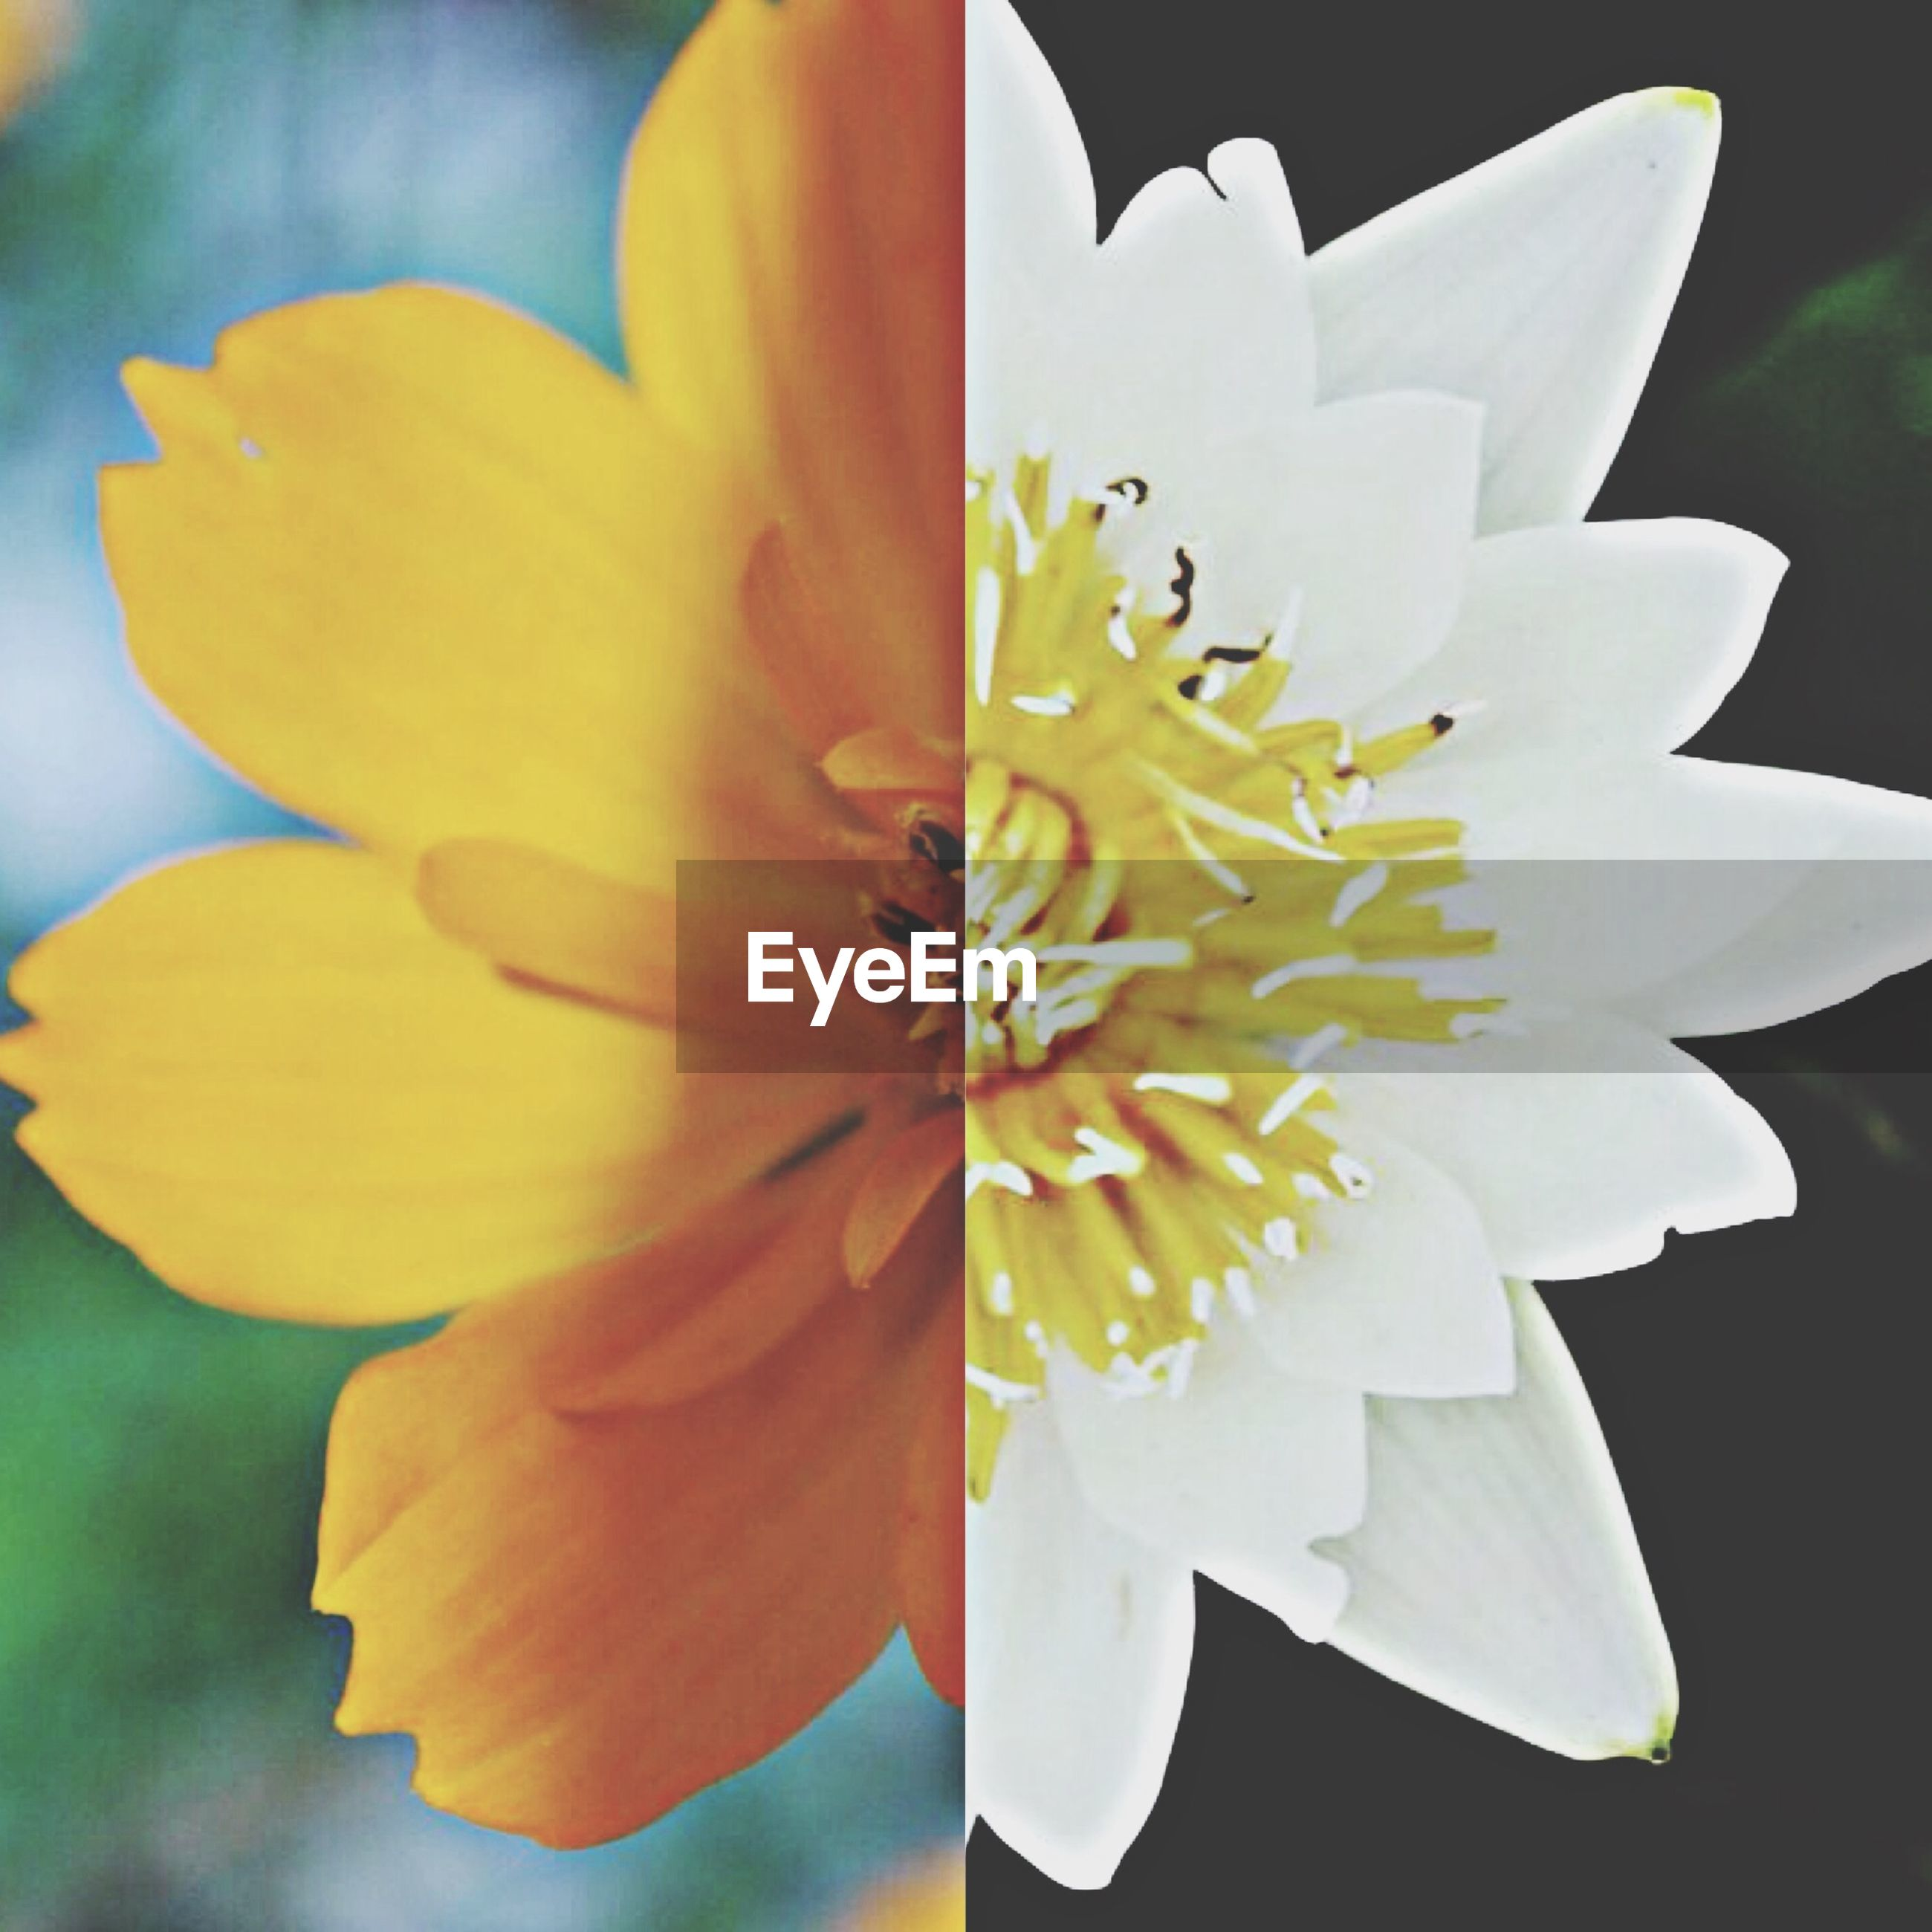 flower, petal, flower head, freshness, fragility, single flower, pollen, close-up, beauty in nature, yellow, stamen, growth, blooming, nature, focus on foreground, in bloom, plant, outdoors, blossom, white color